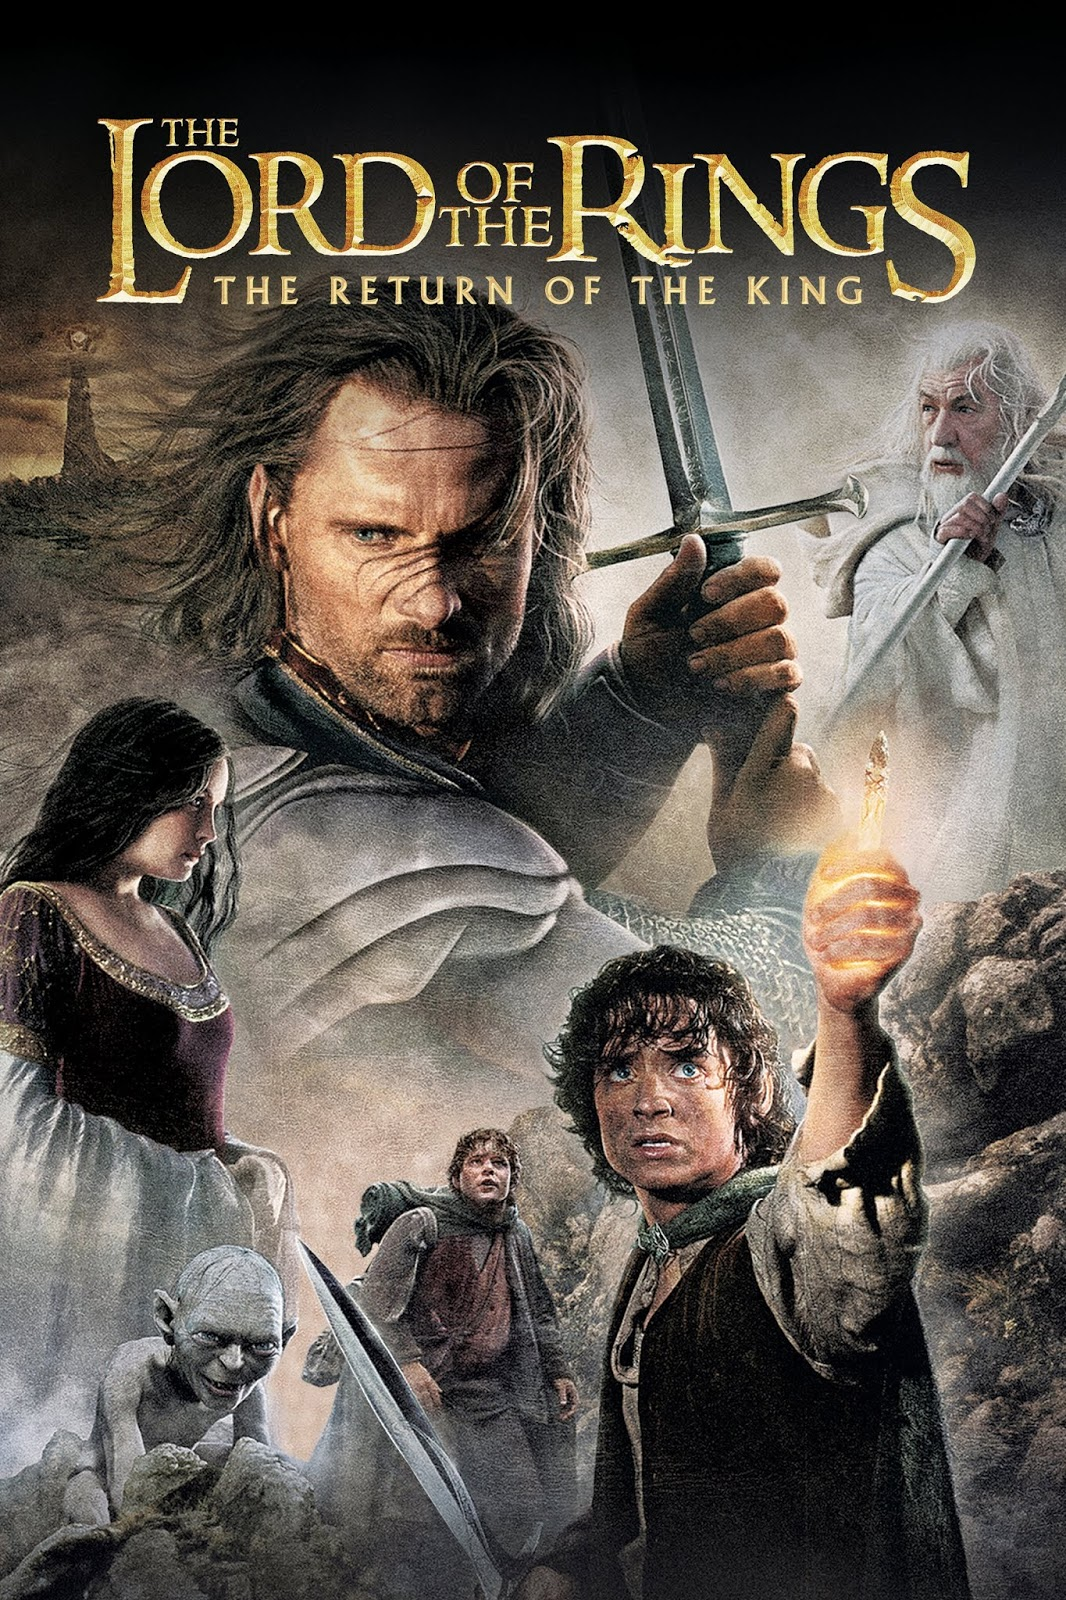 THE LORD OF THE RINGS 3 TAMIL DUBBED HD